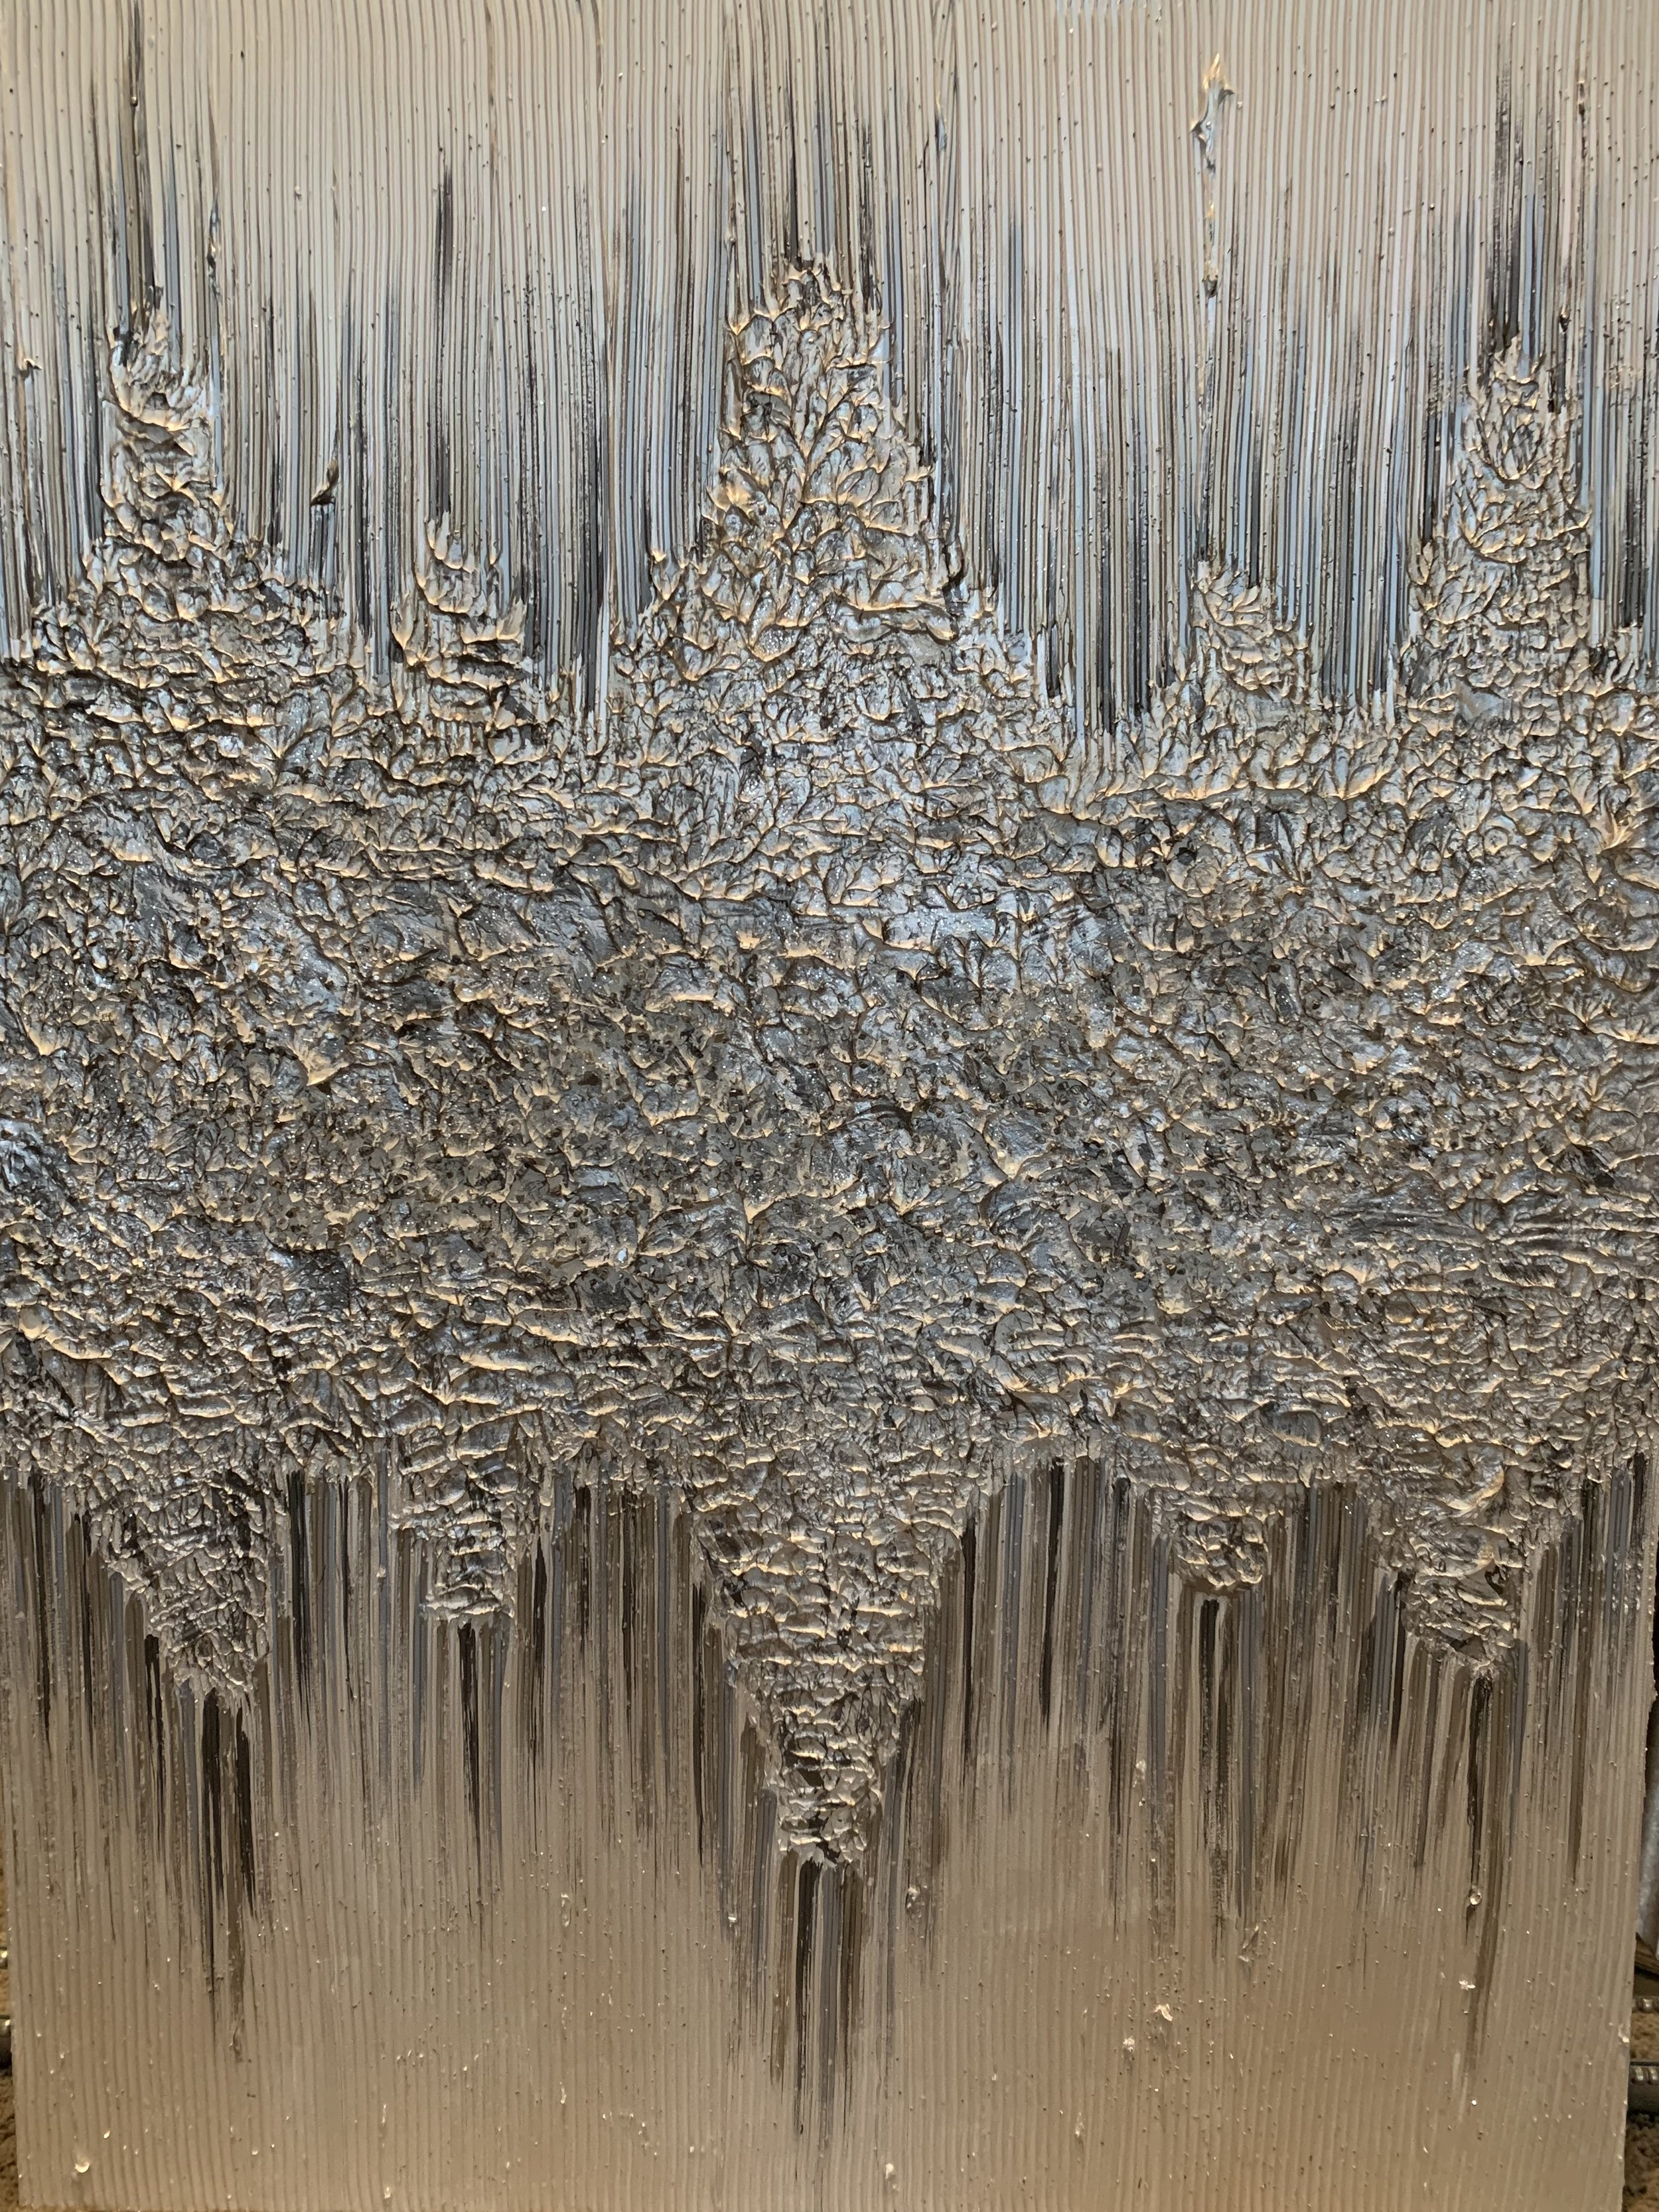 Lots of texture in the middle with stones in bronze, silver, champagne and grey spilling onto a diamond white background. 36x48 as shown.